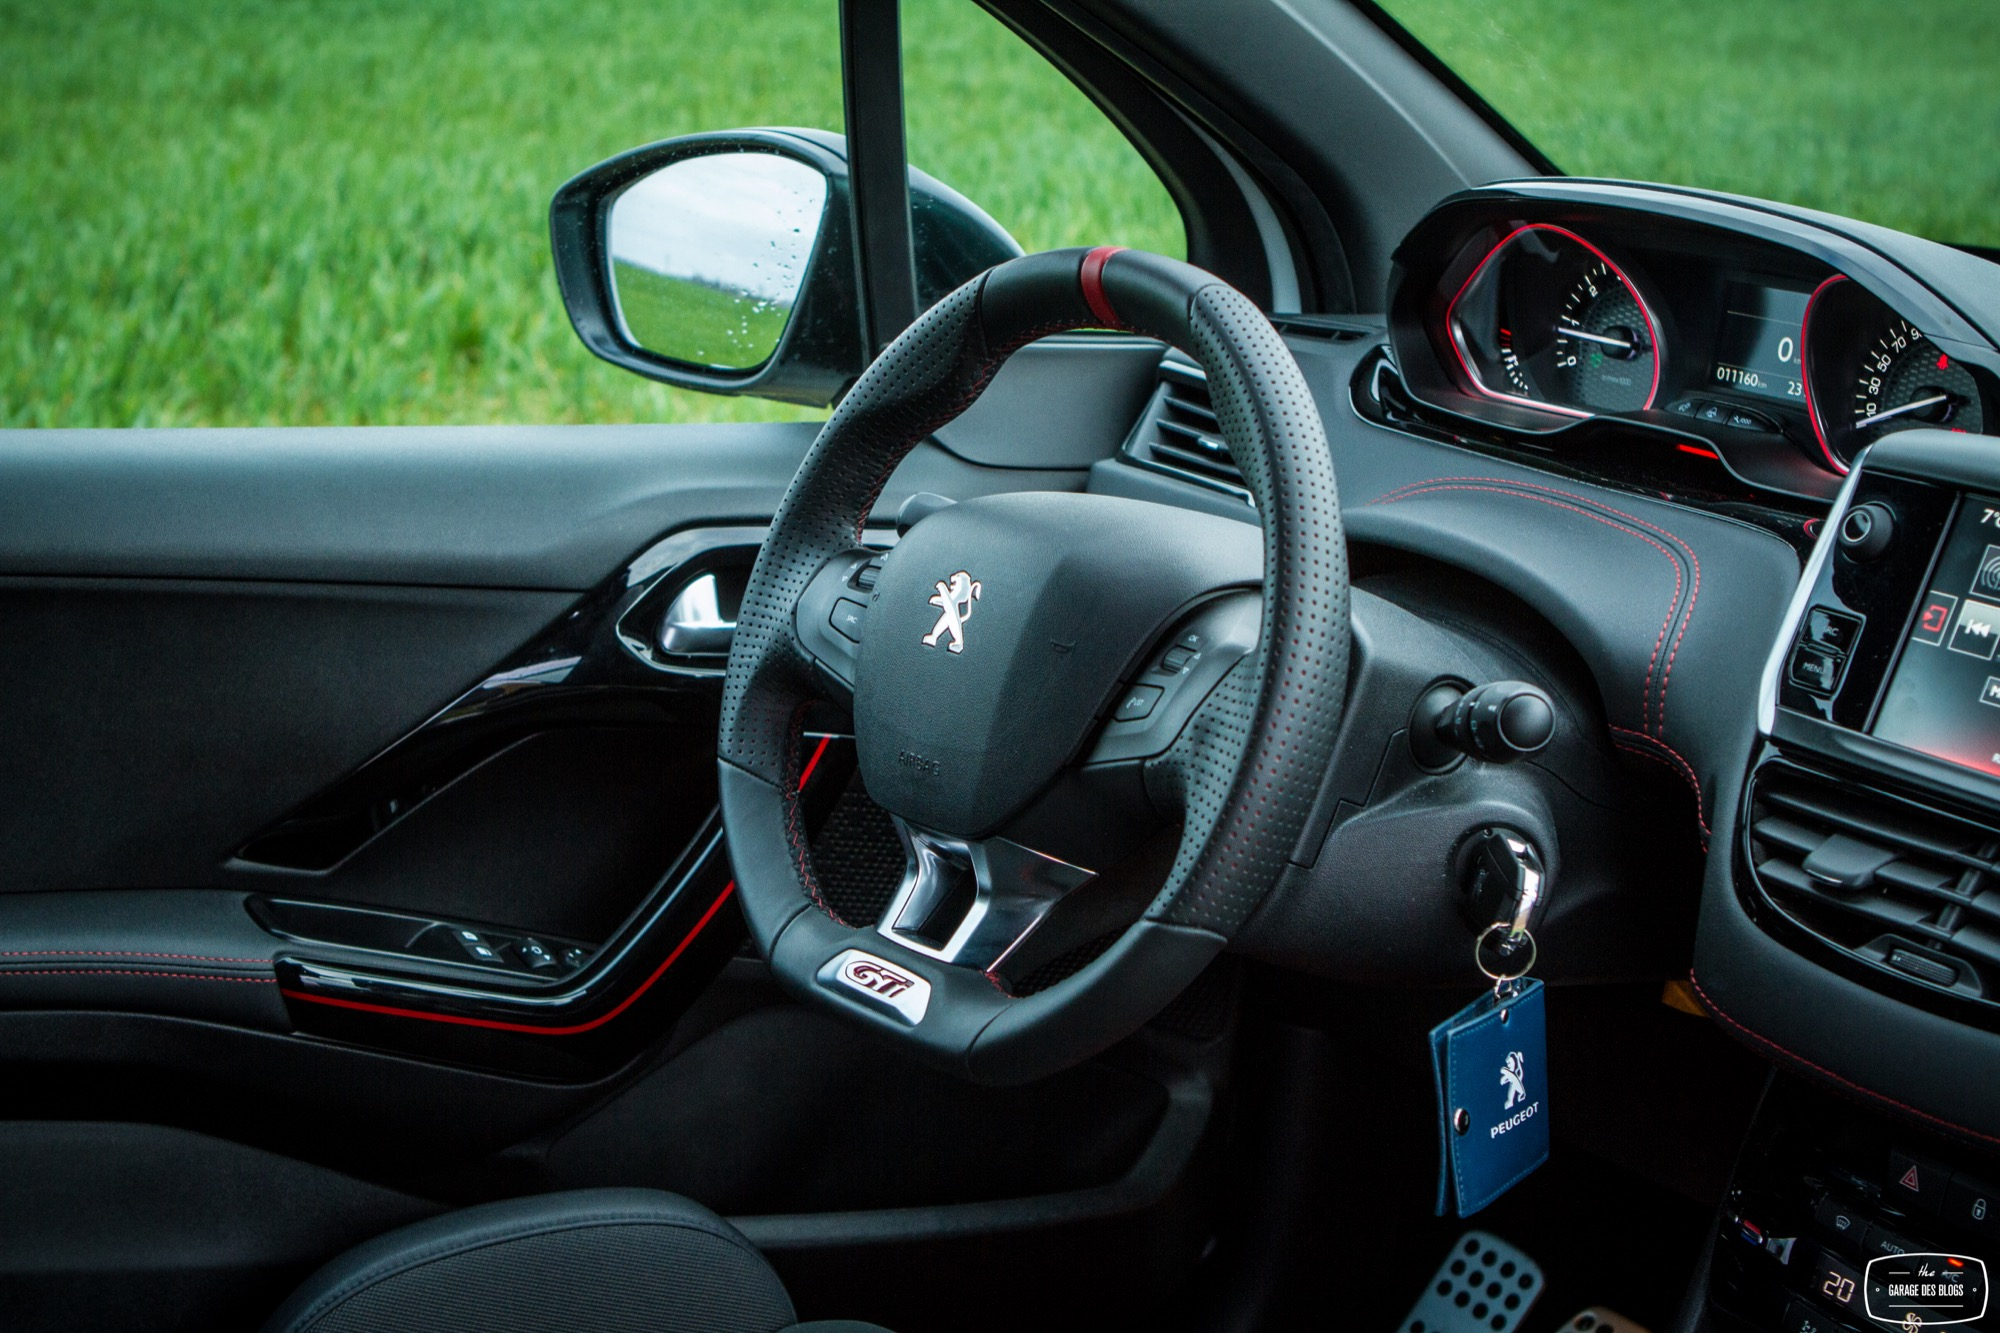 Essai peugeot 208 gti 30th interieur 1 le blog de viinz for Interieur 208 gti